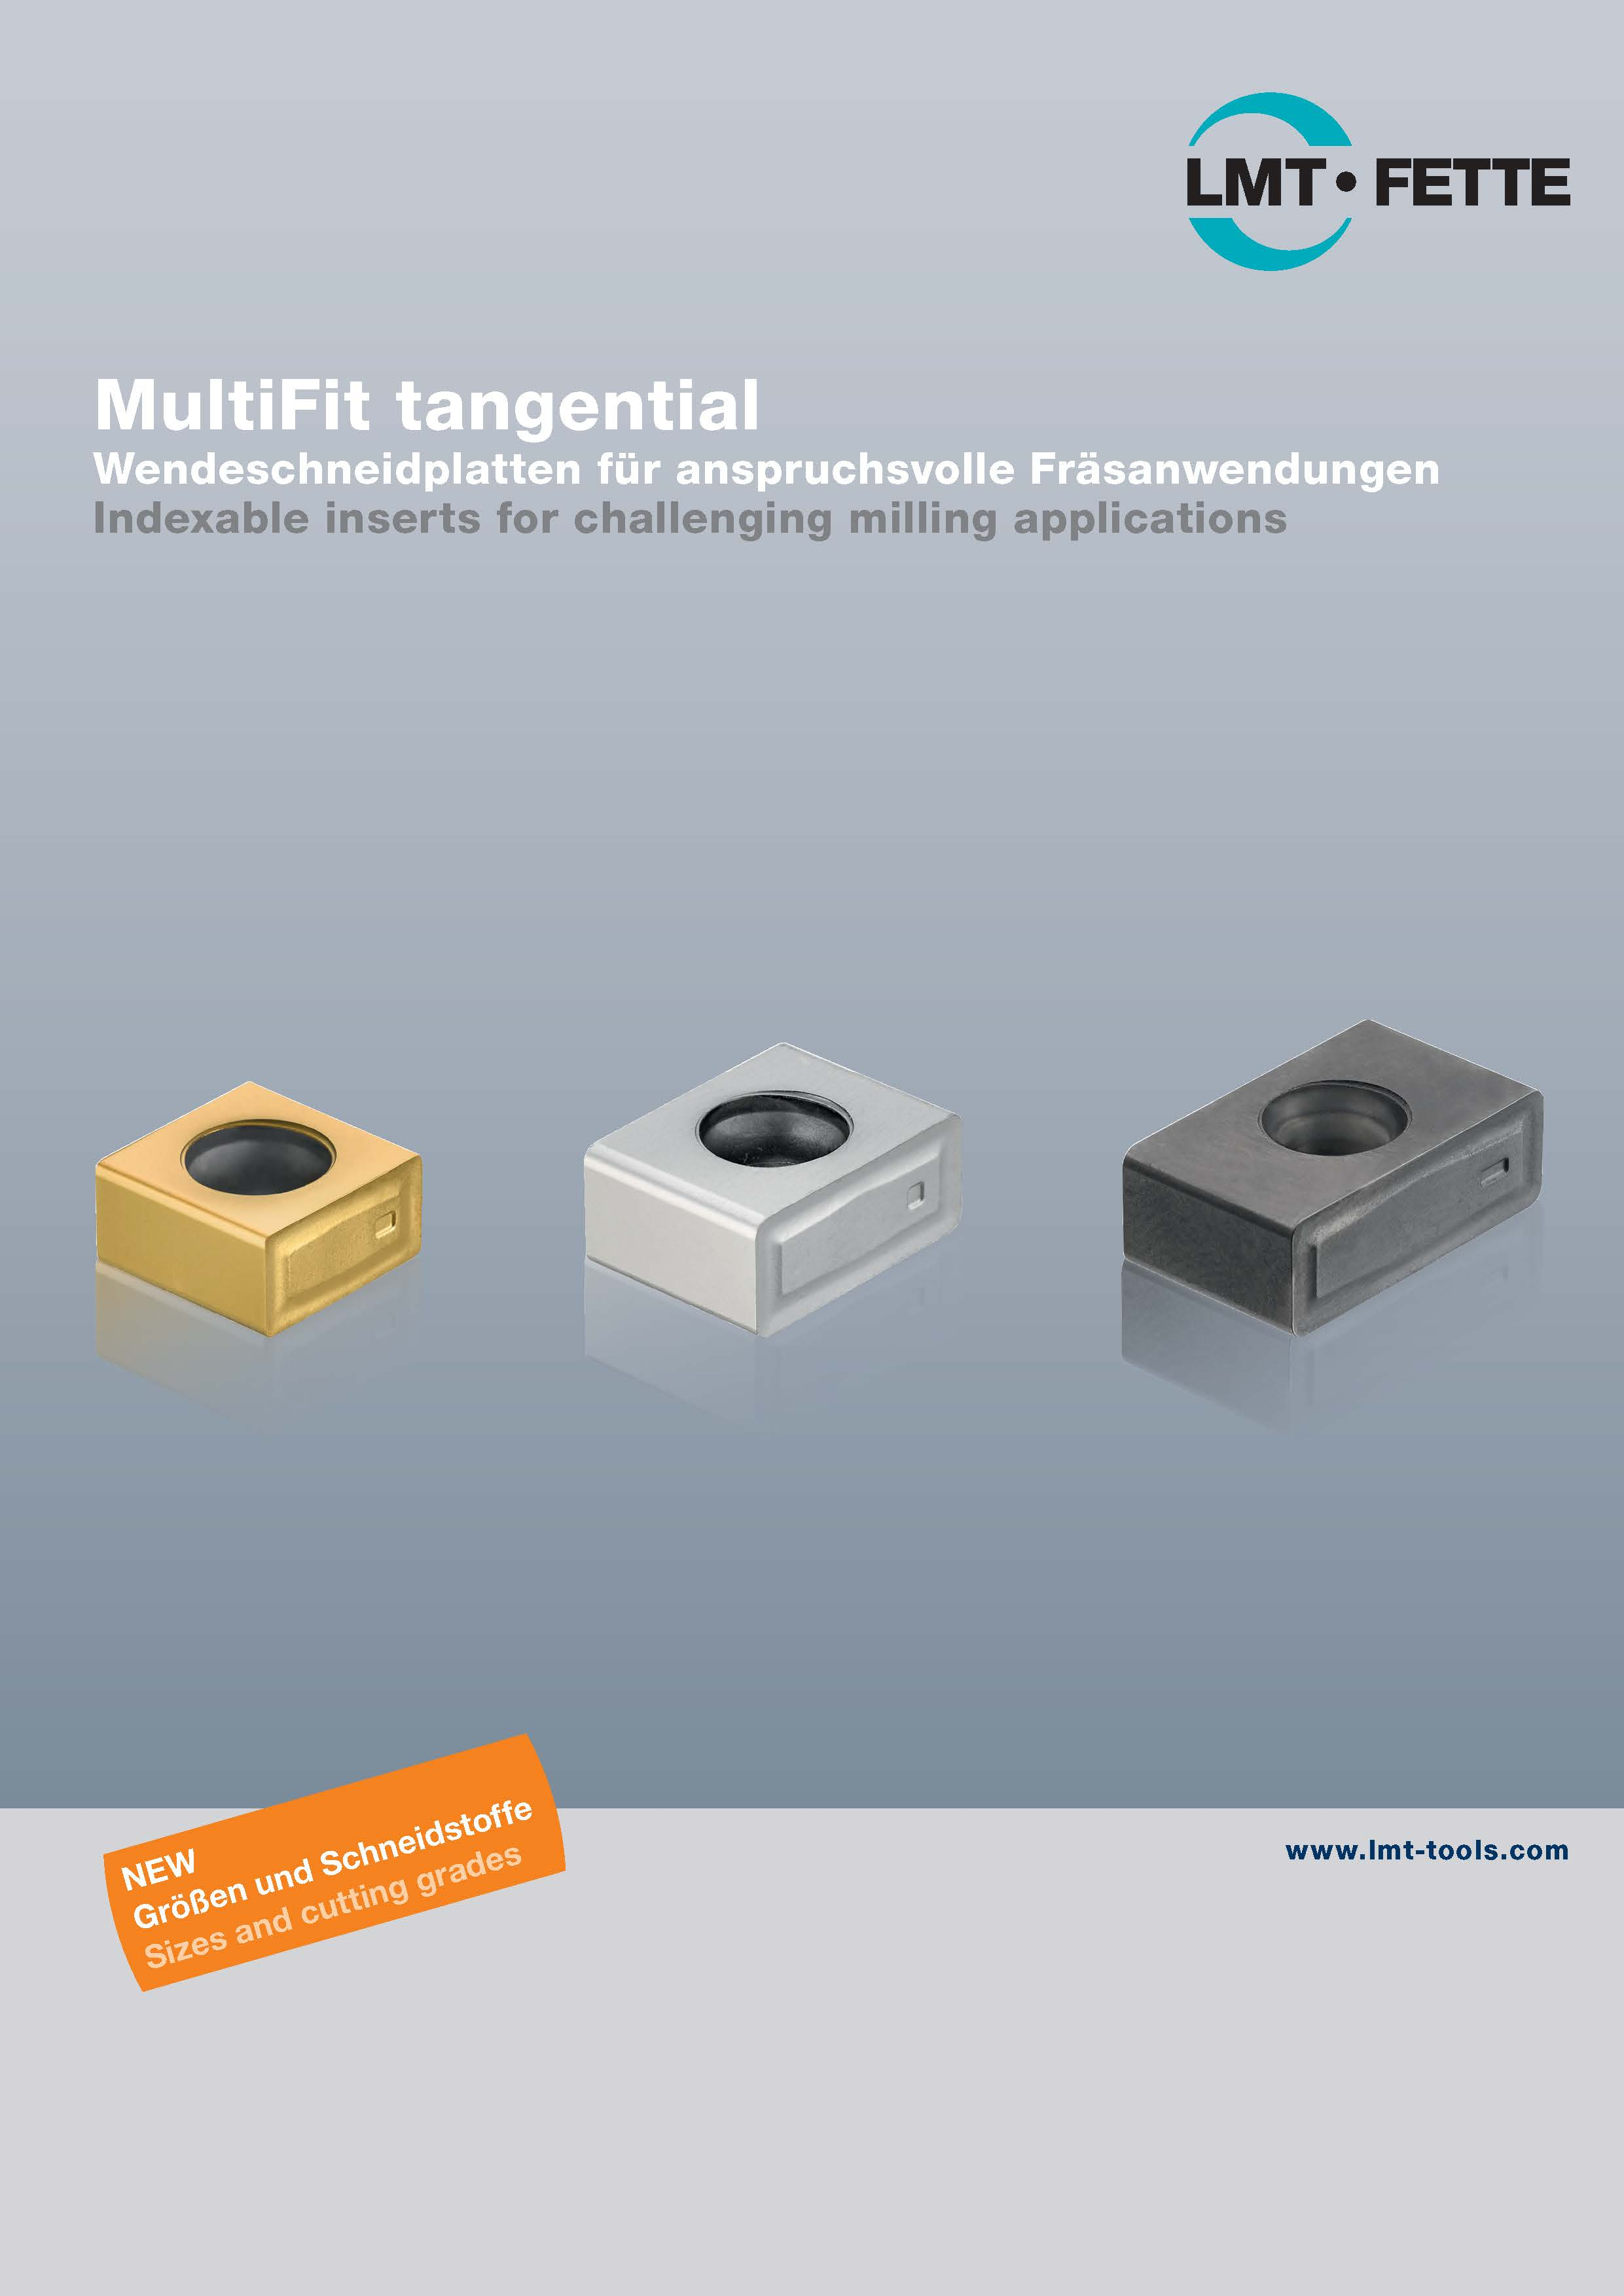 MultiFit tangential: Indexable inserts for challenging milling applications